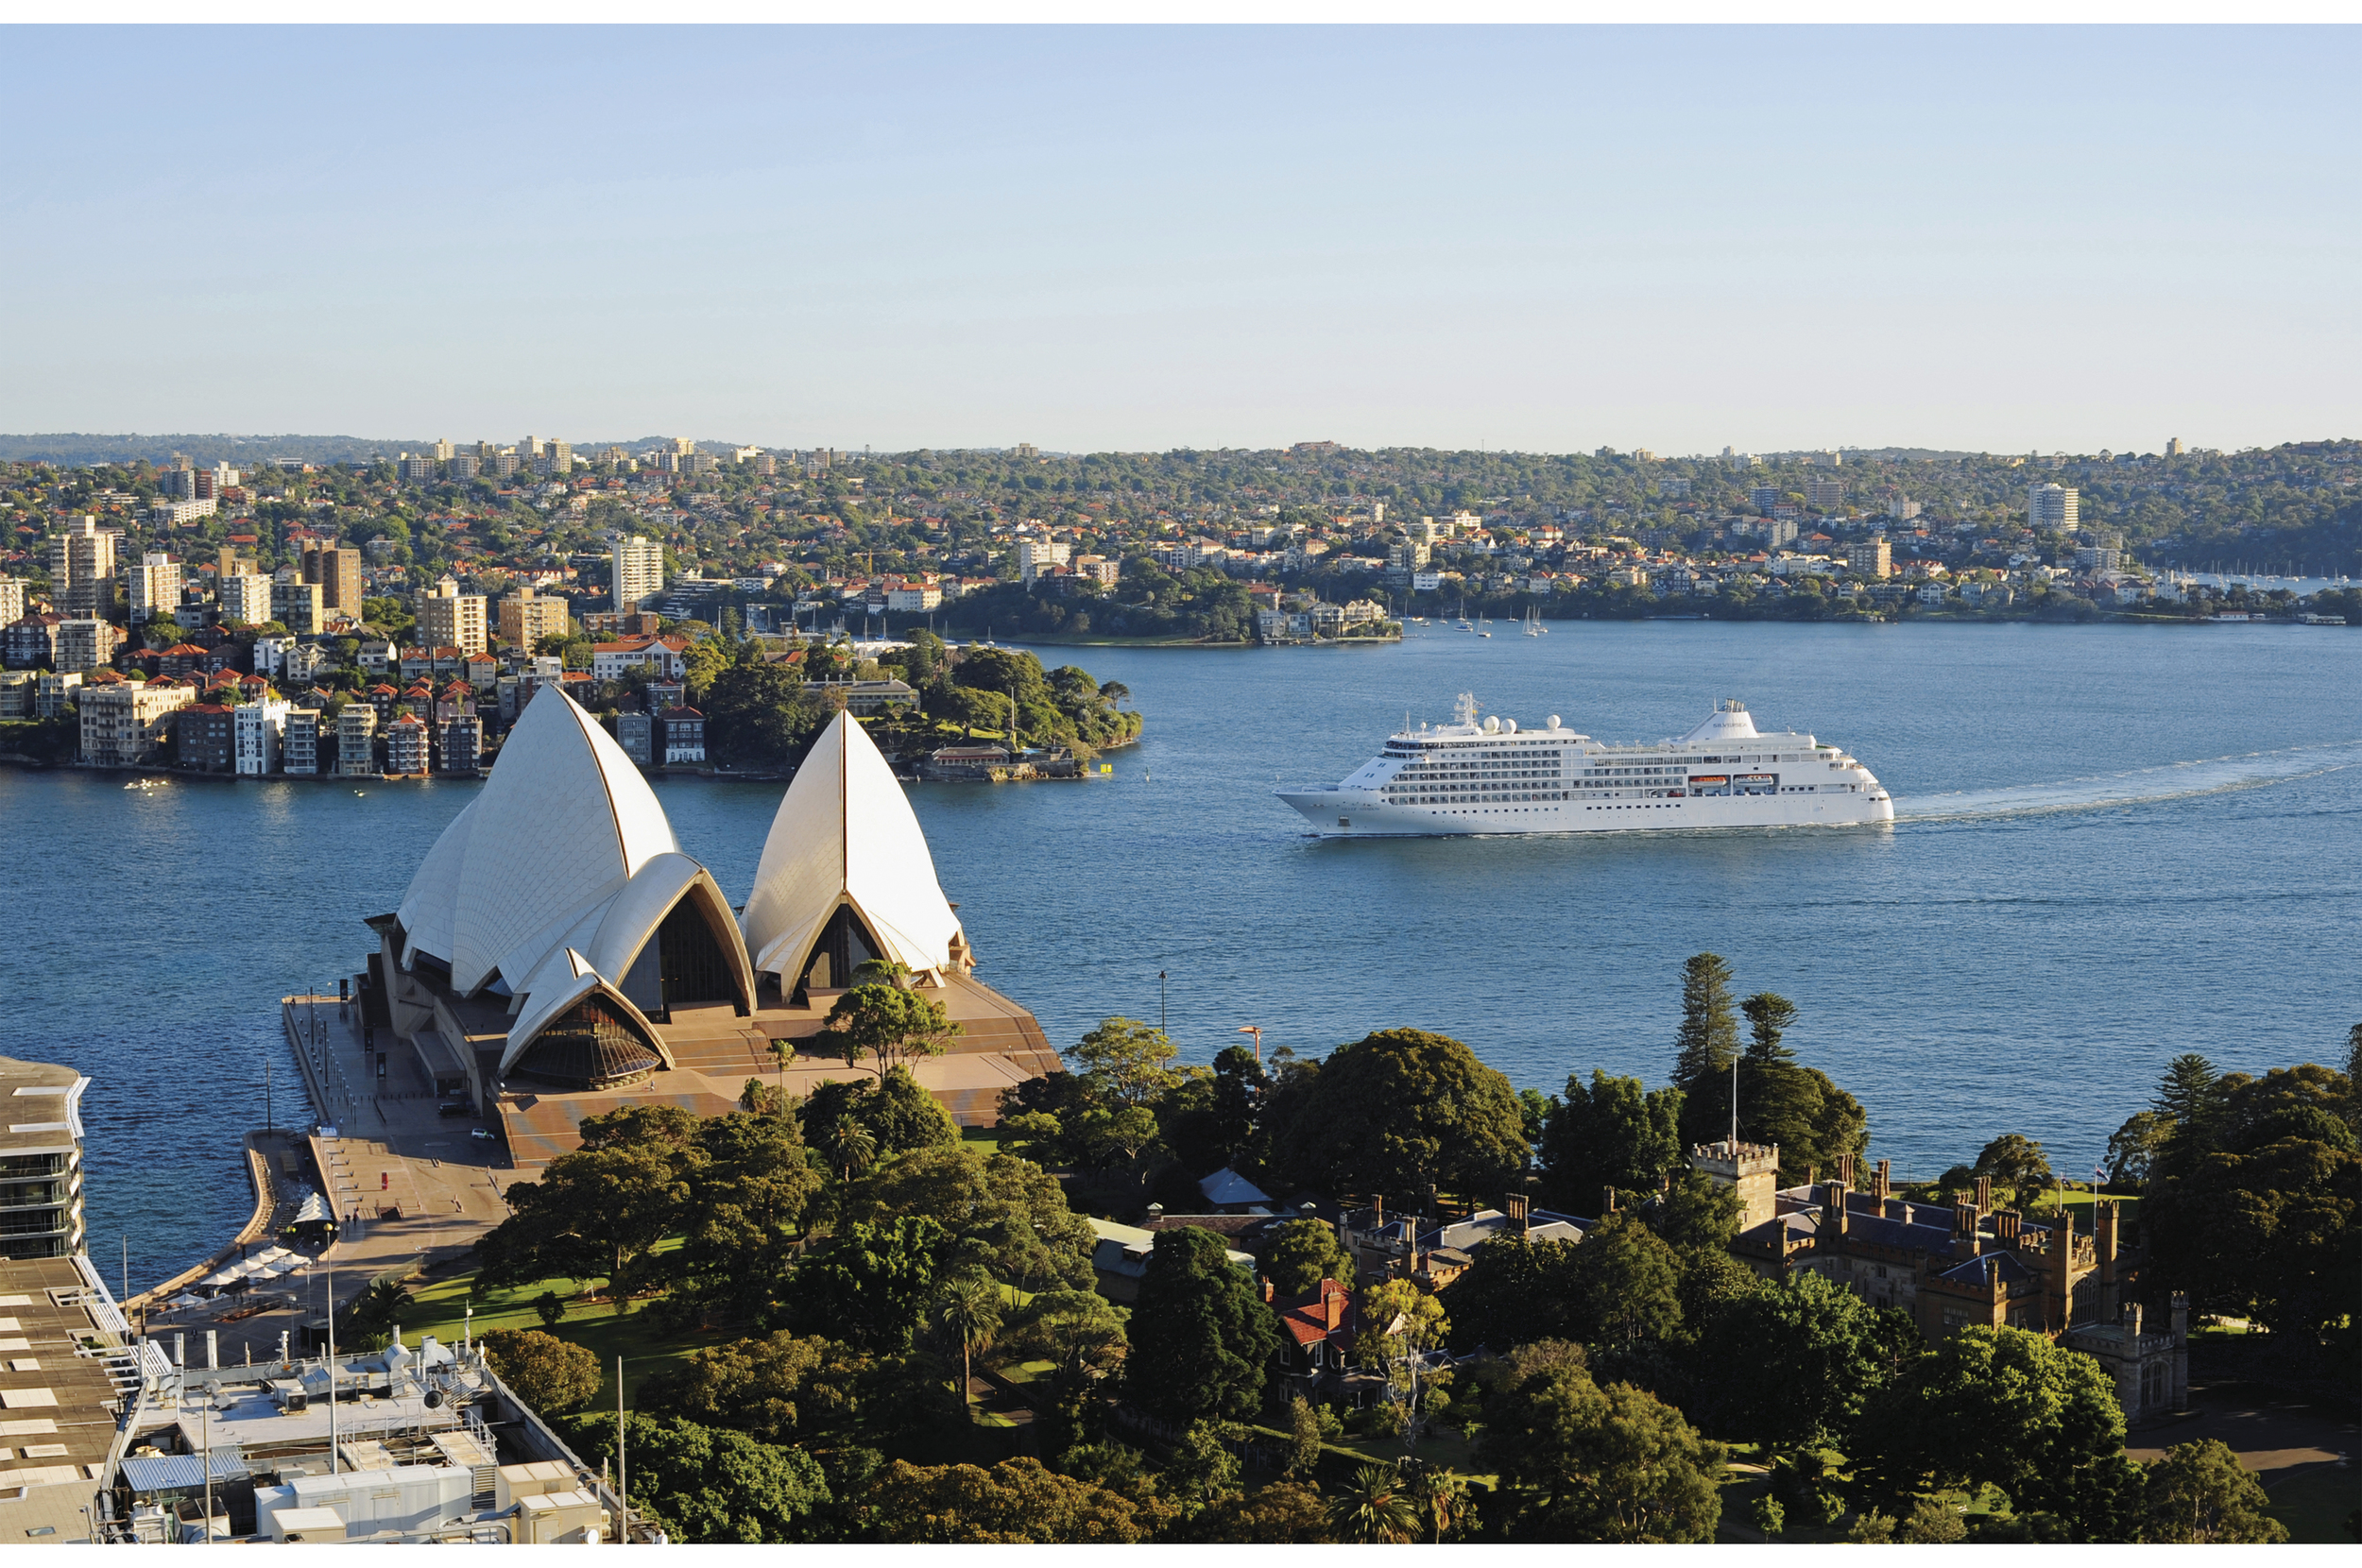 Image provided by Silversea Cruises